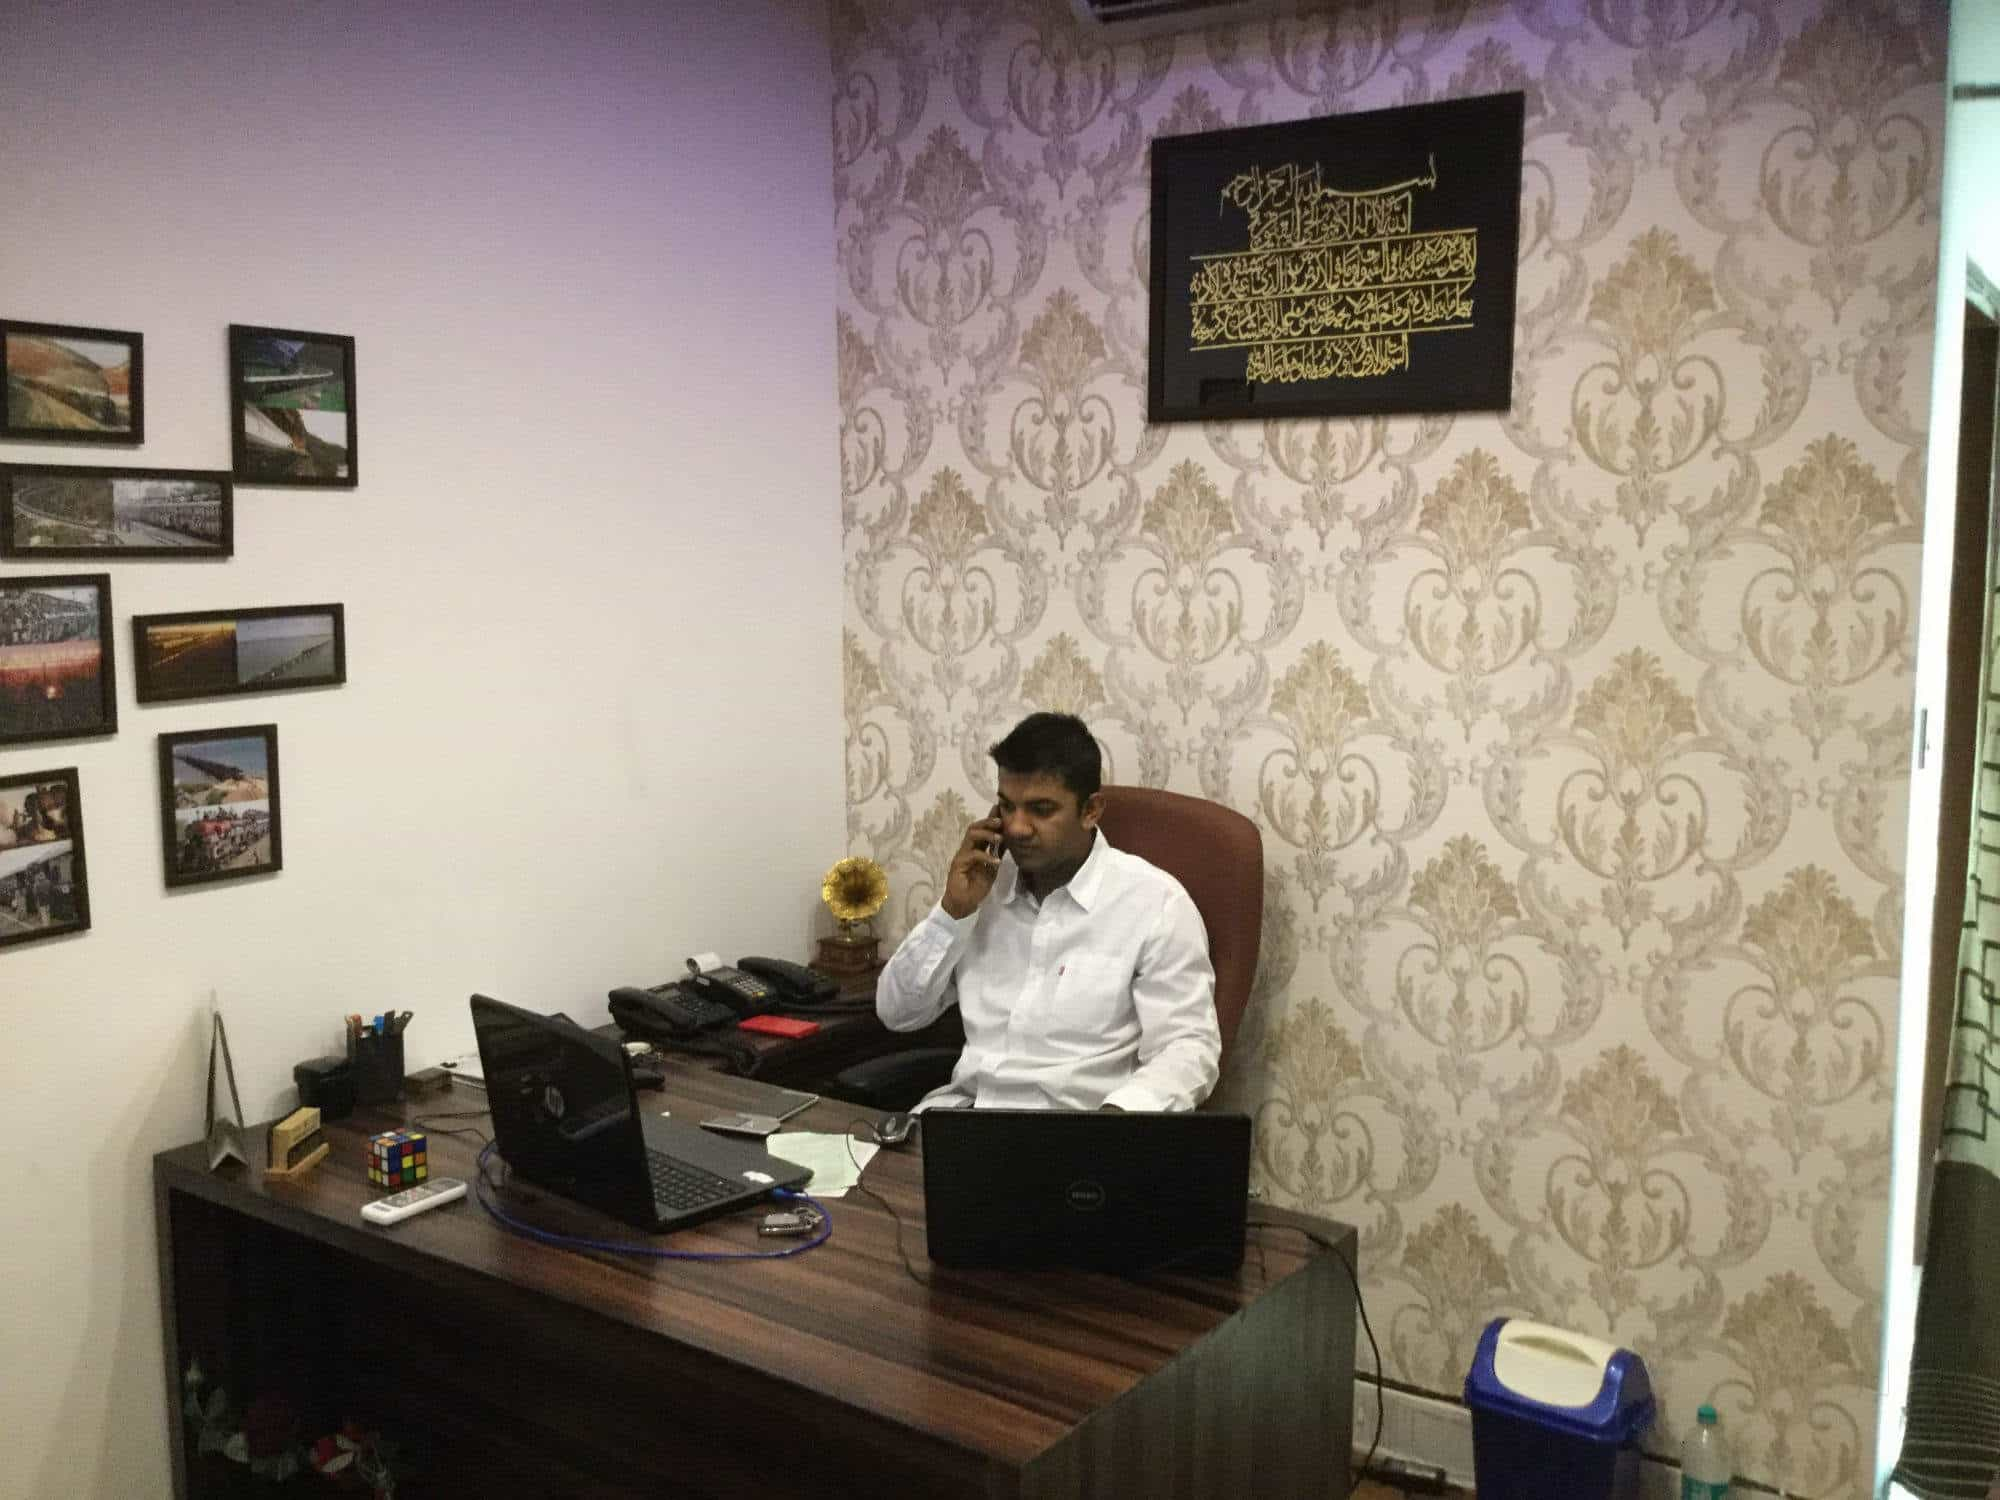 ... Inside View of Travel Agent Office - INAM TRAVELS Photos, Peergate, Bhopal - Railway